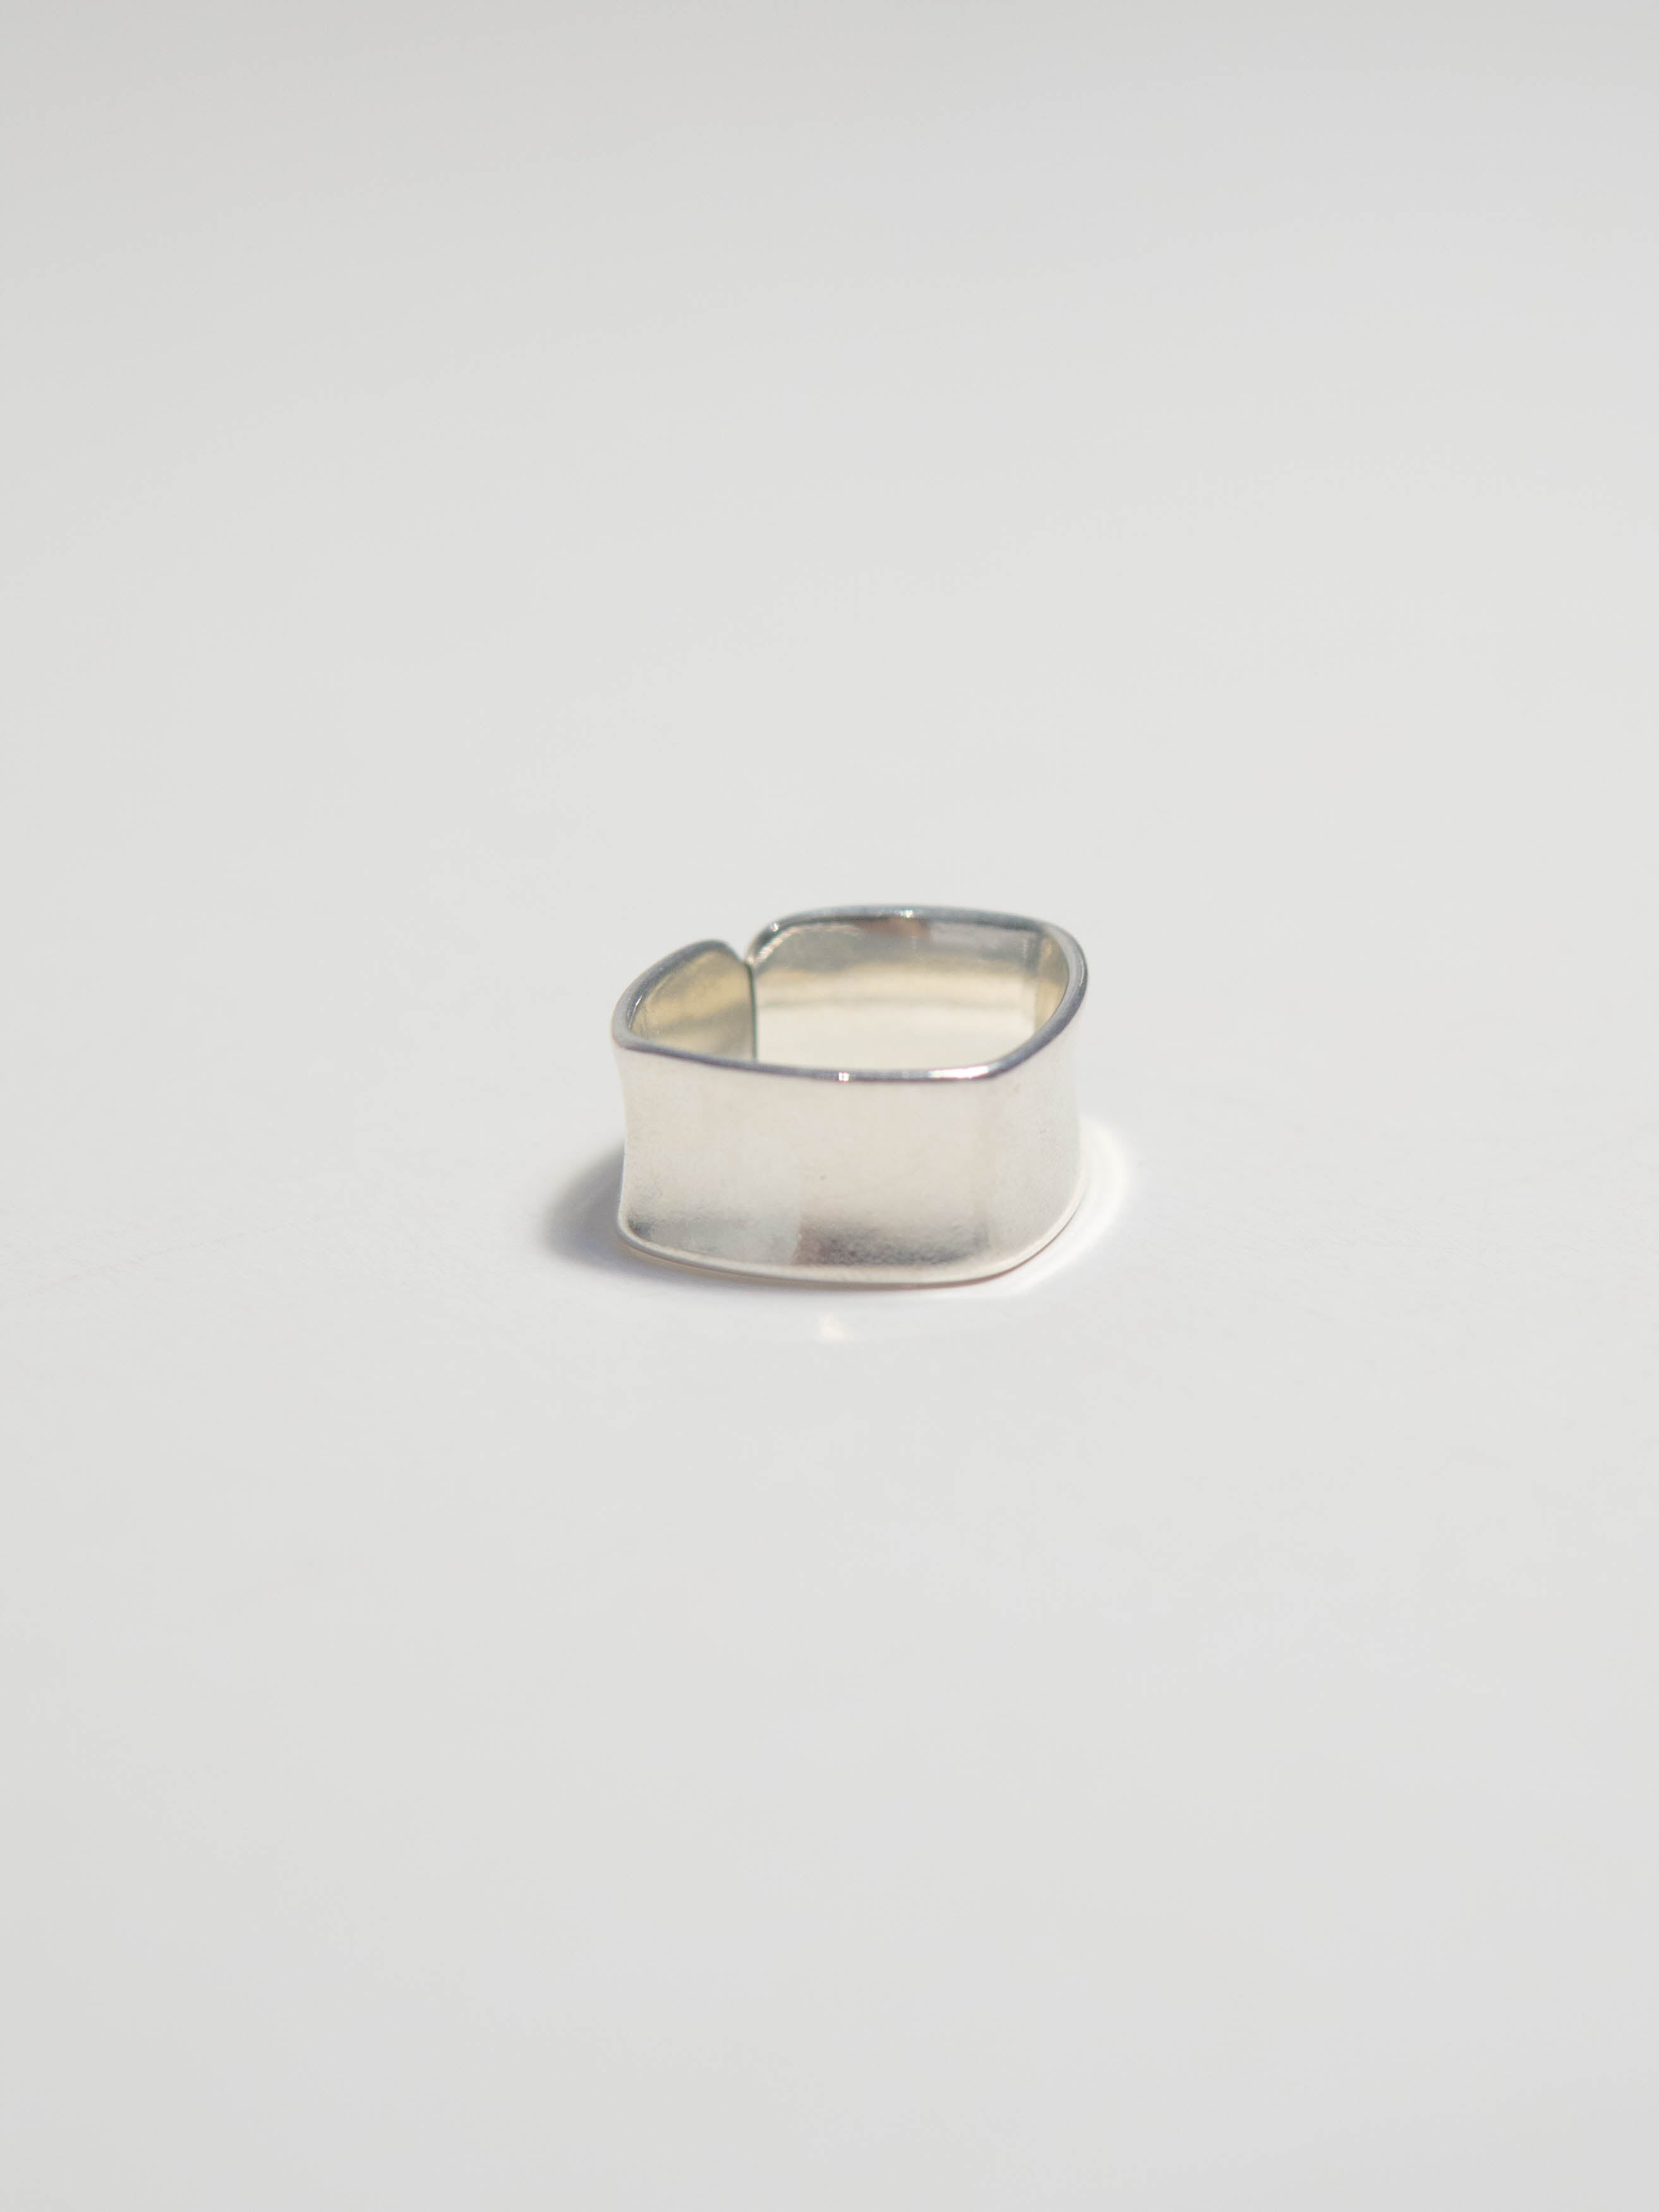 Square wide brim ring